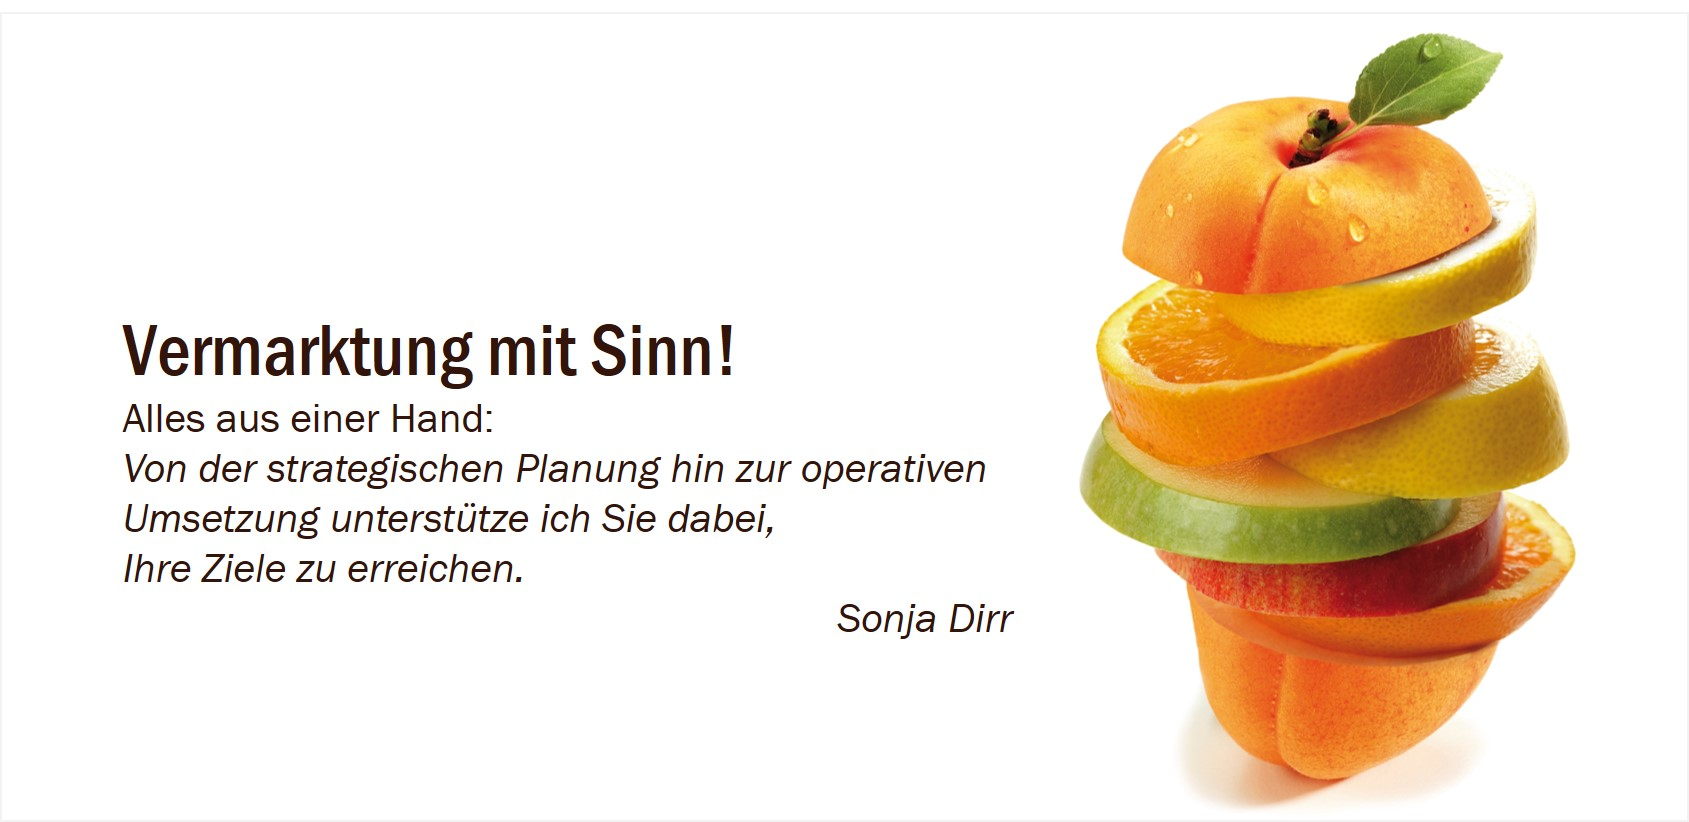 apricot_MarketingMitSinn_SonjaDirr.jpg